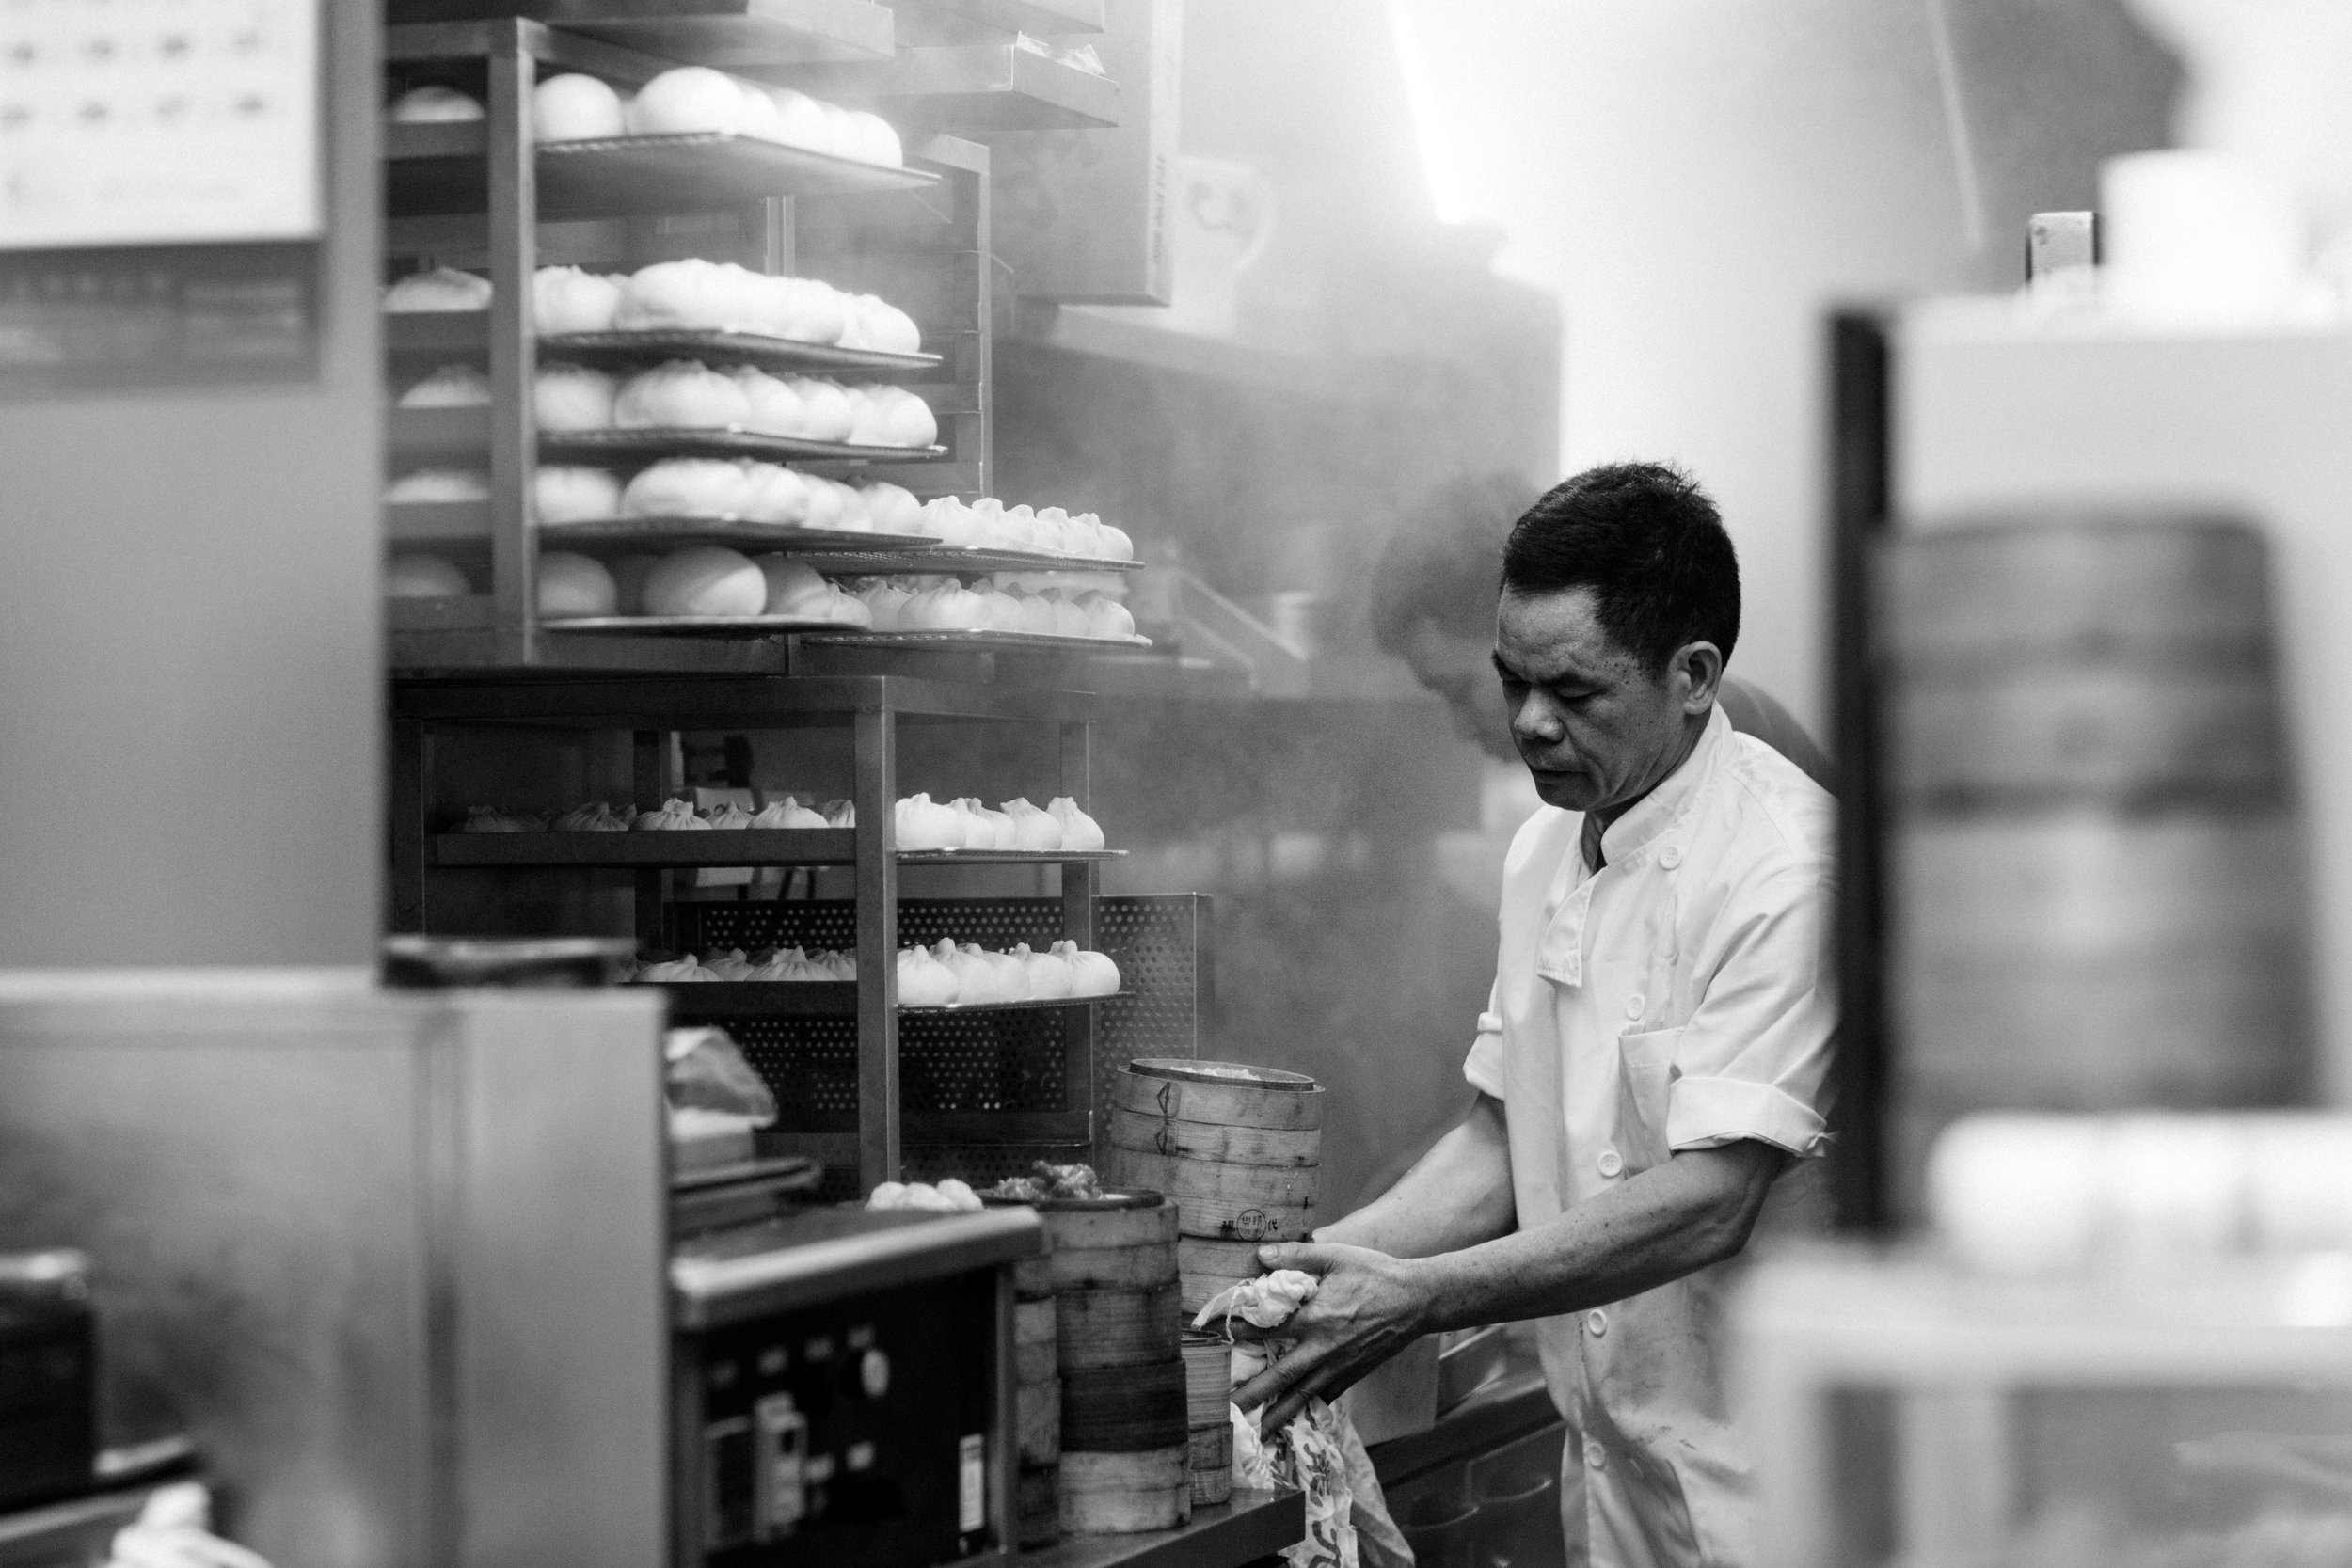 A man works in dumpling food store in food market in Wan Chai Hong Kong